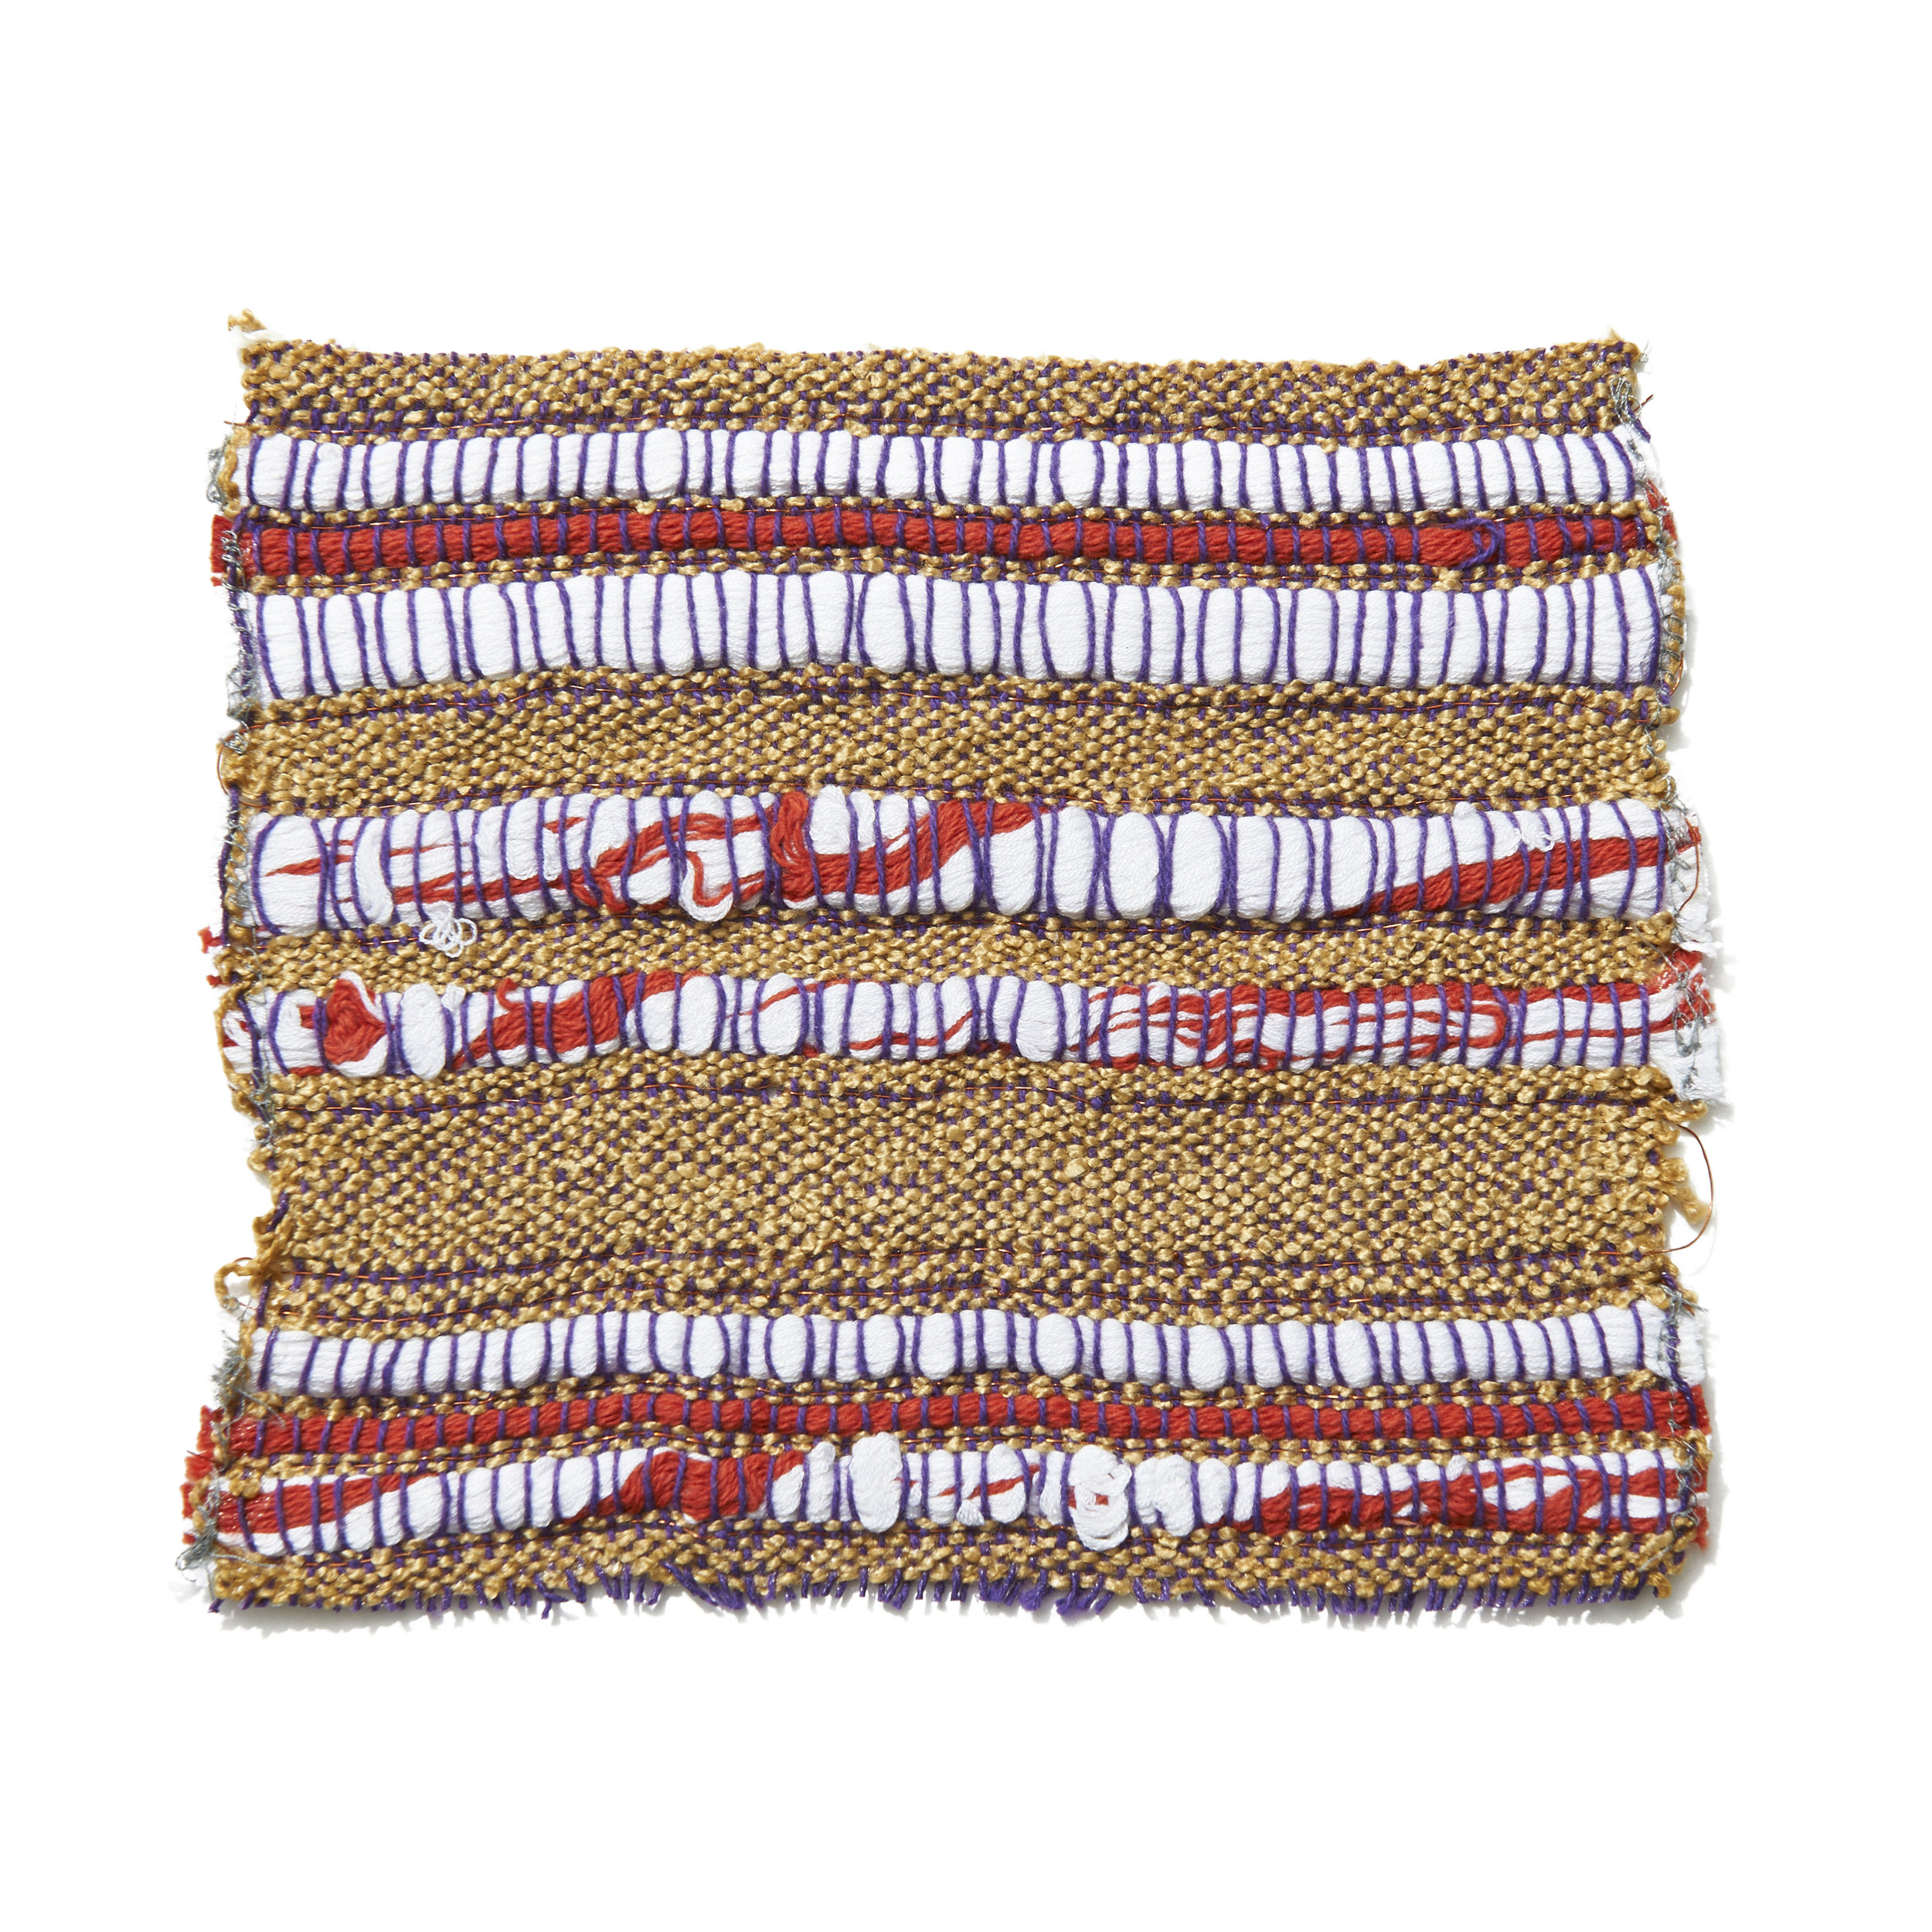 Mixed Yarns and Copper Wire 7 x 6.5 in 2006